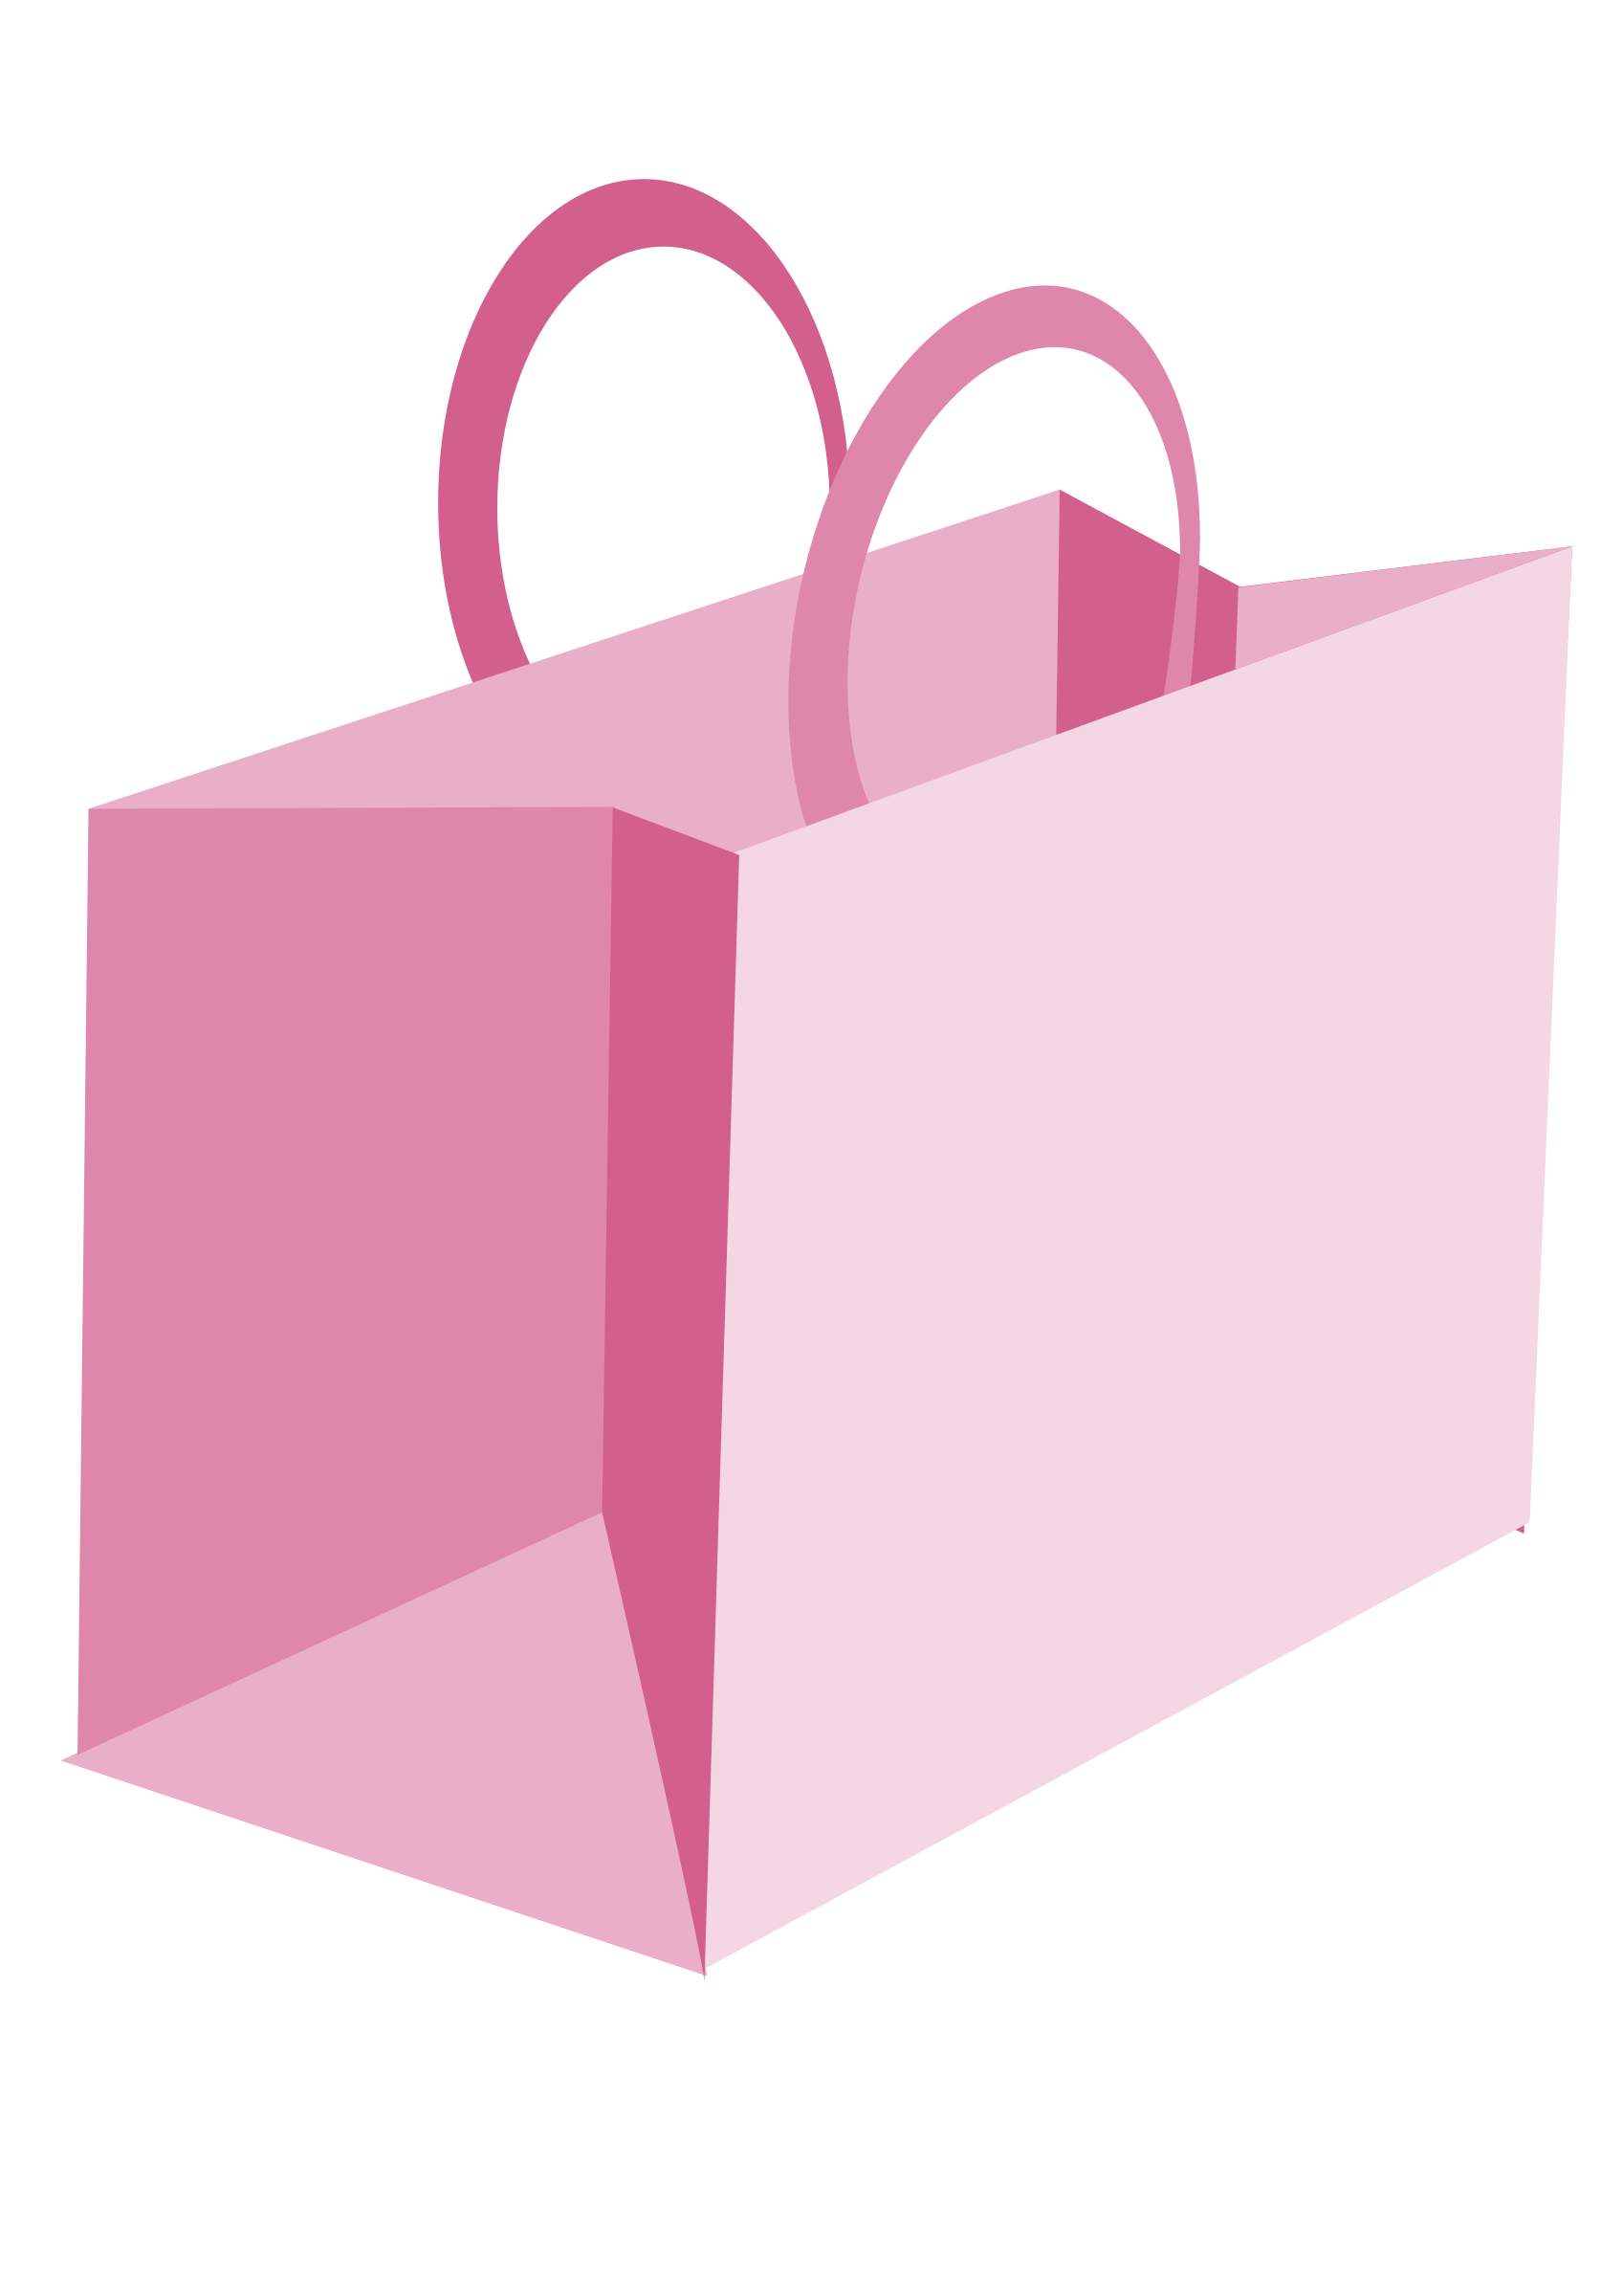 pink shopping bag clipart clipart suggest shopping bag clip art black shopping bag clip art black and white